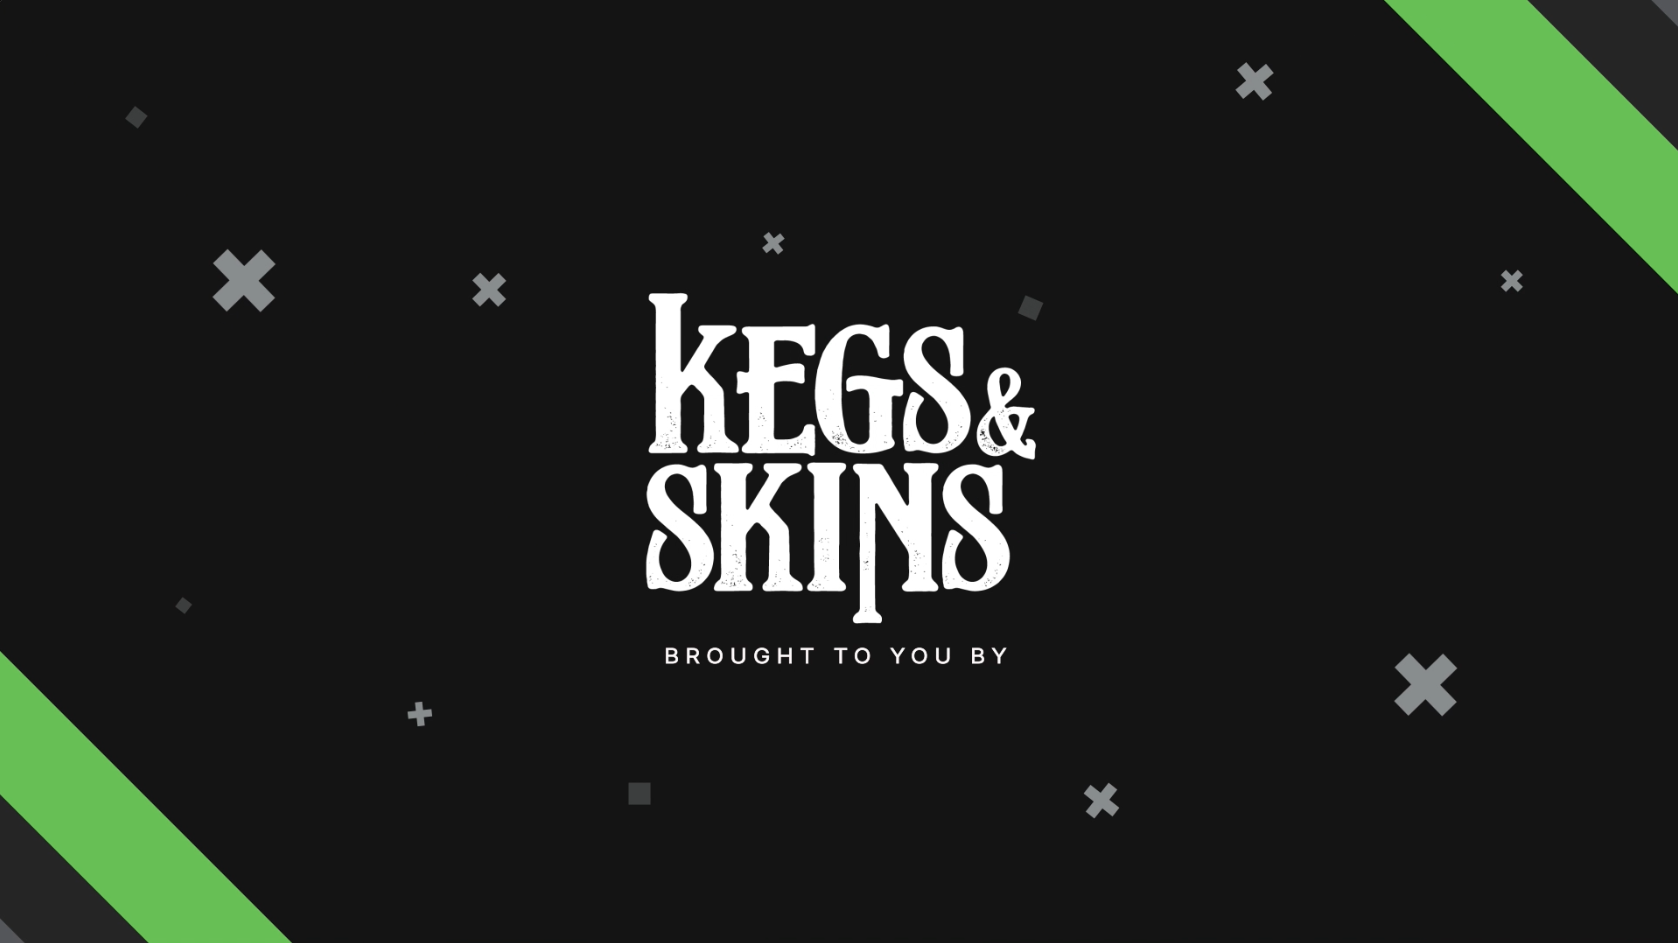 Starting something new, we will be doing weekly videos. Let us know what you think and welcome to the Kegs & Skins Show Presented by BPG!